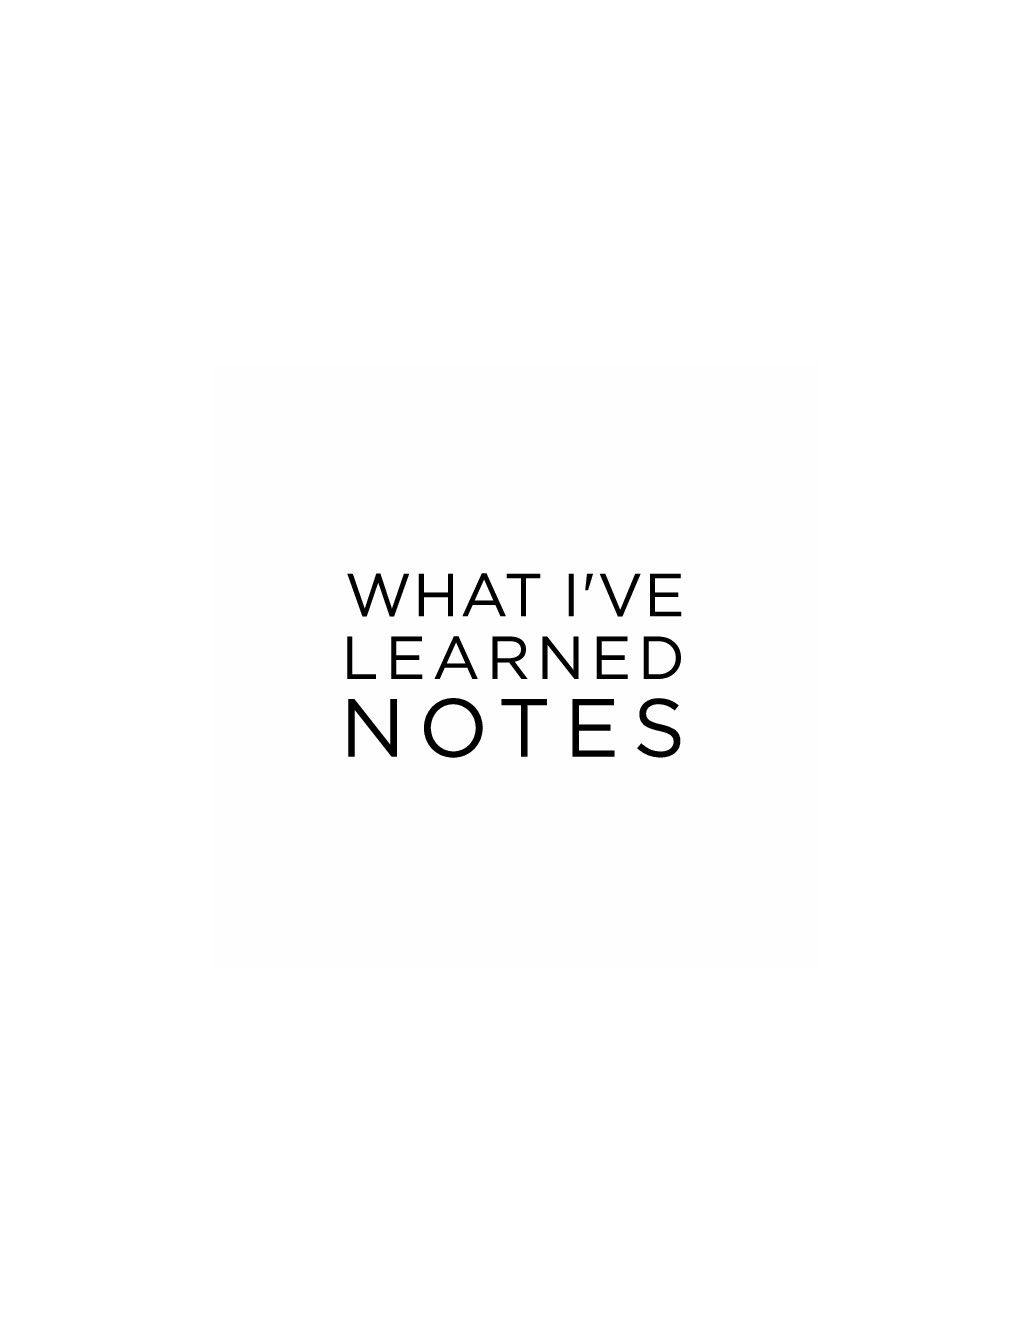 LOGO for What I've Learned: Notes on All Things Life-Related